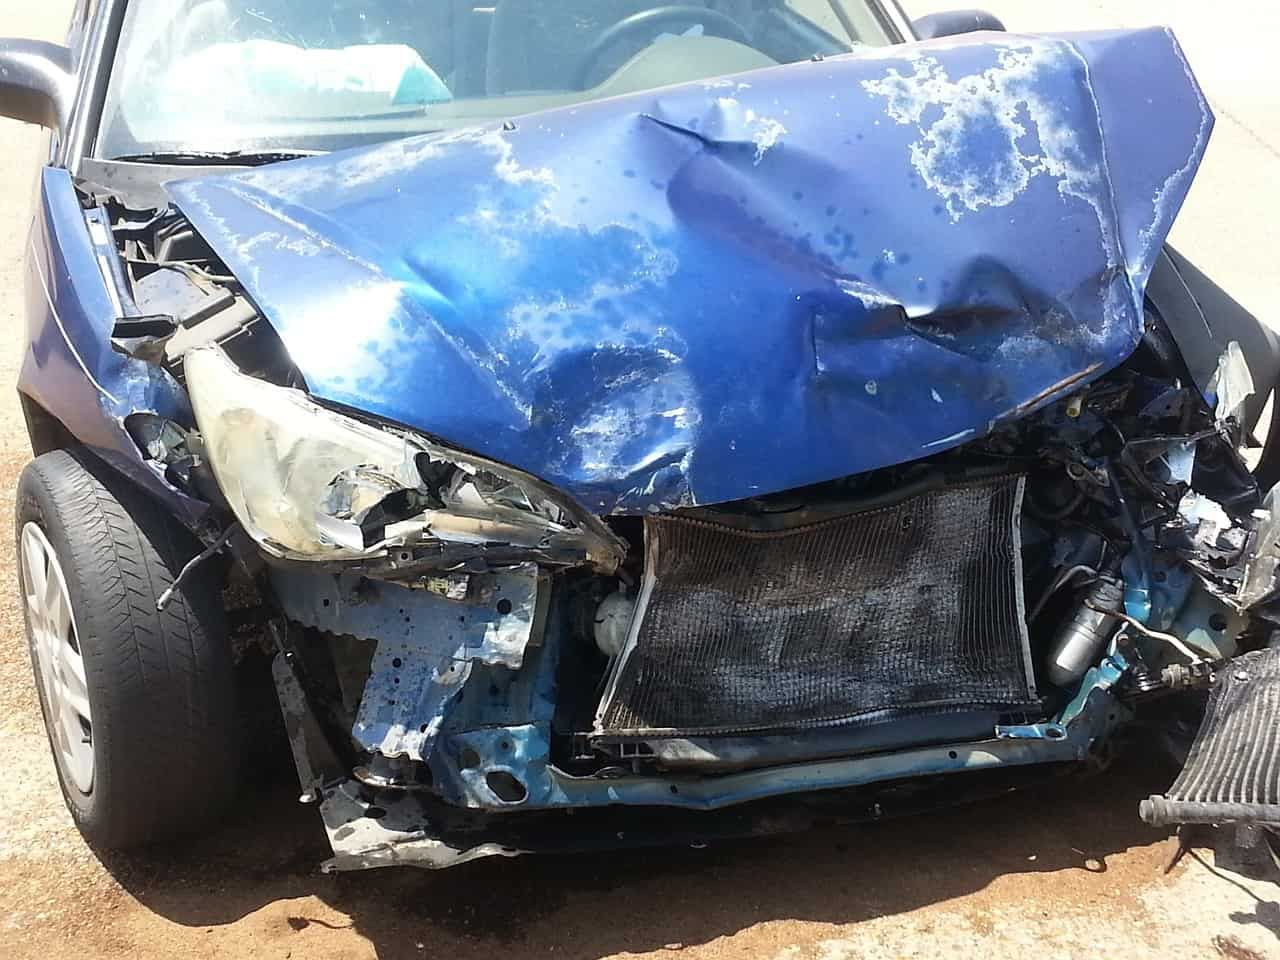 Totaled car with ignition interlock breathalyzer